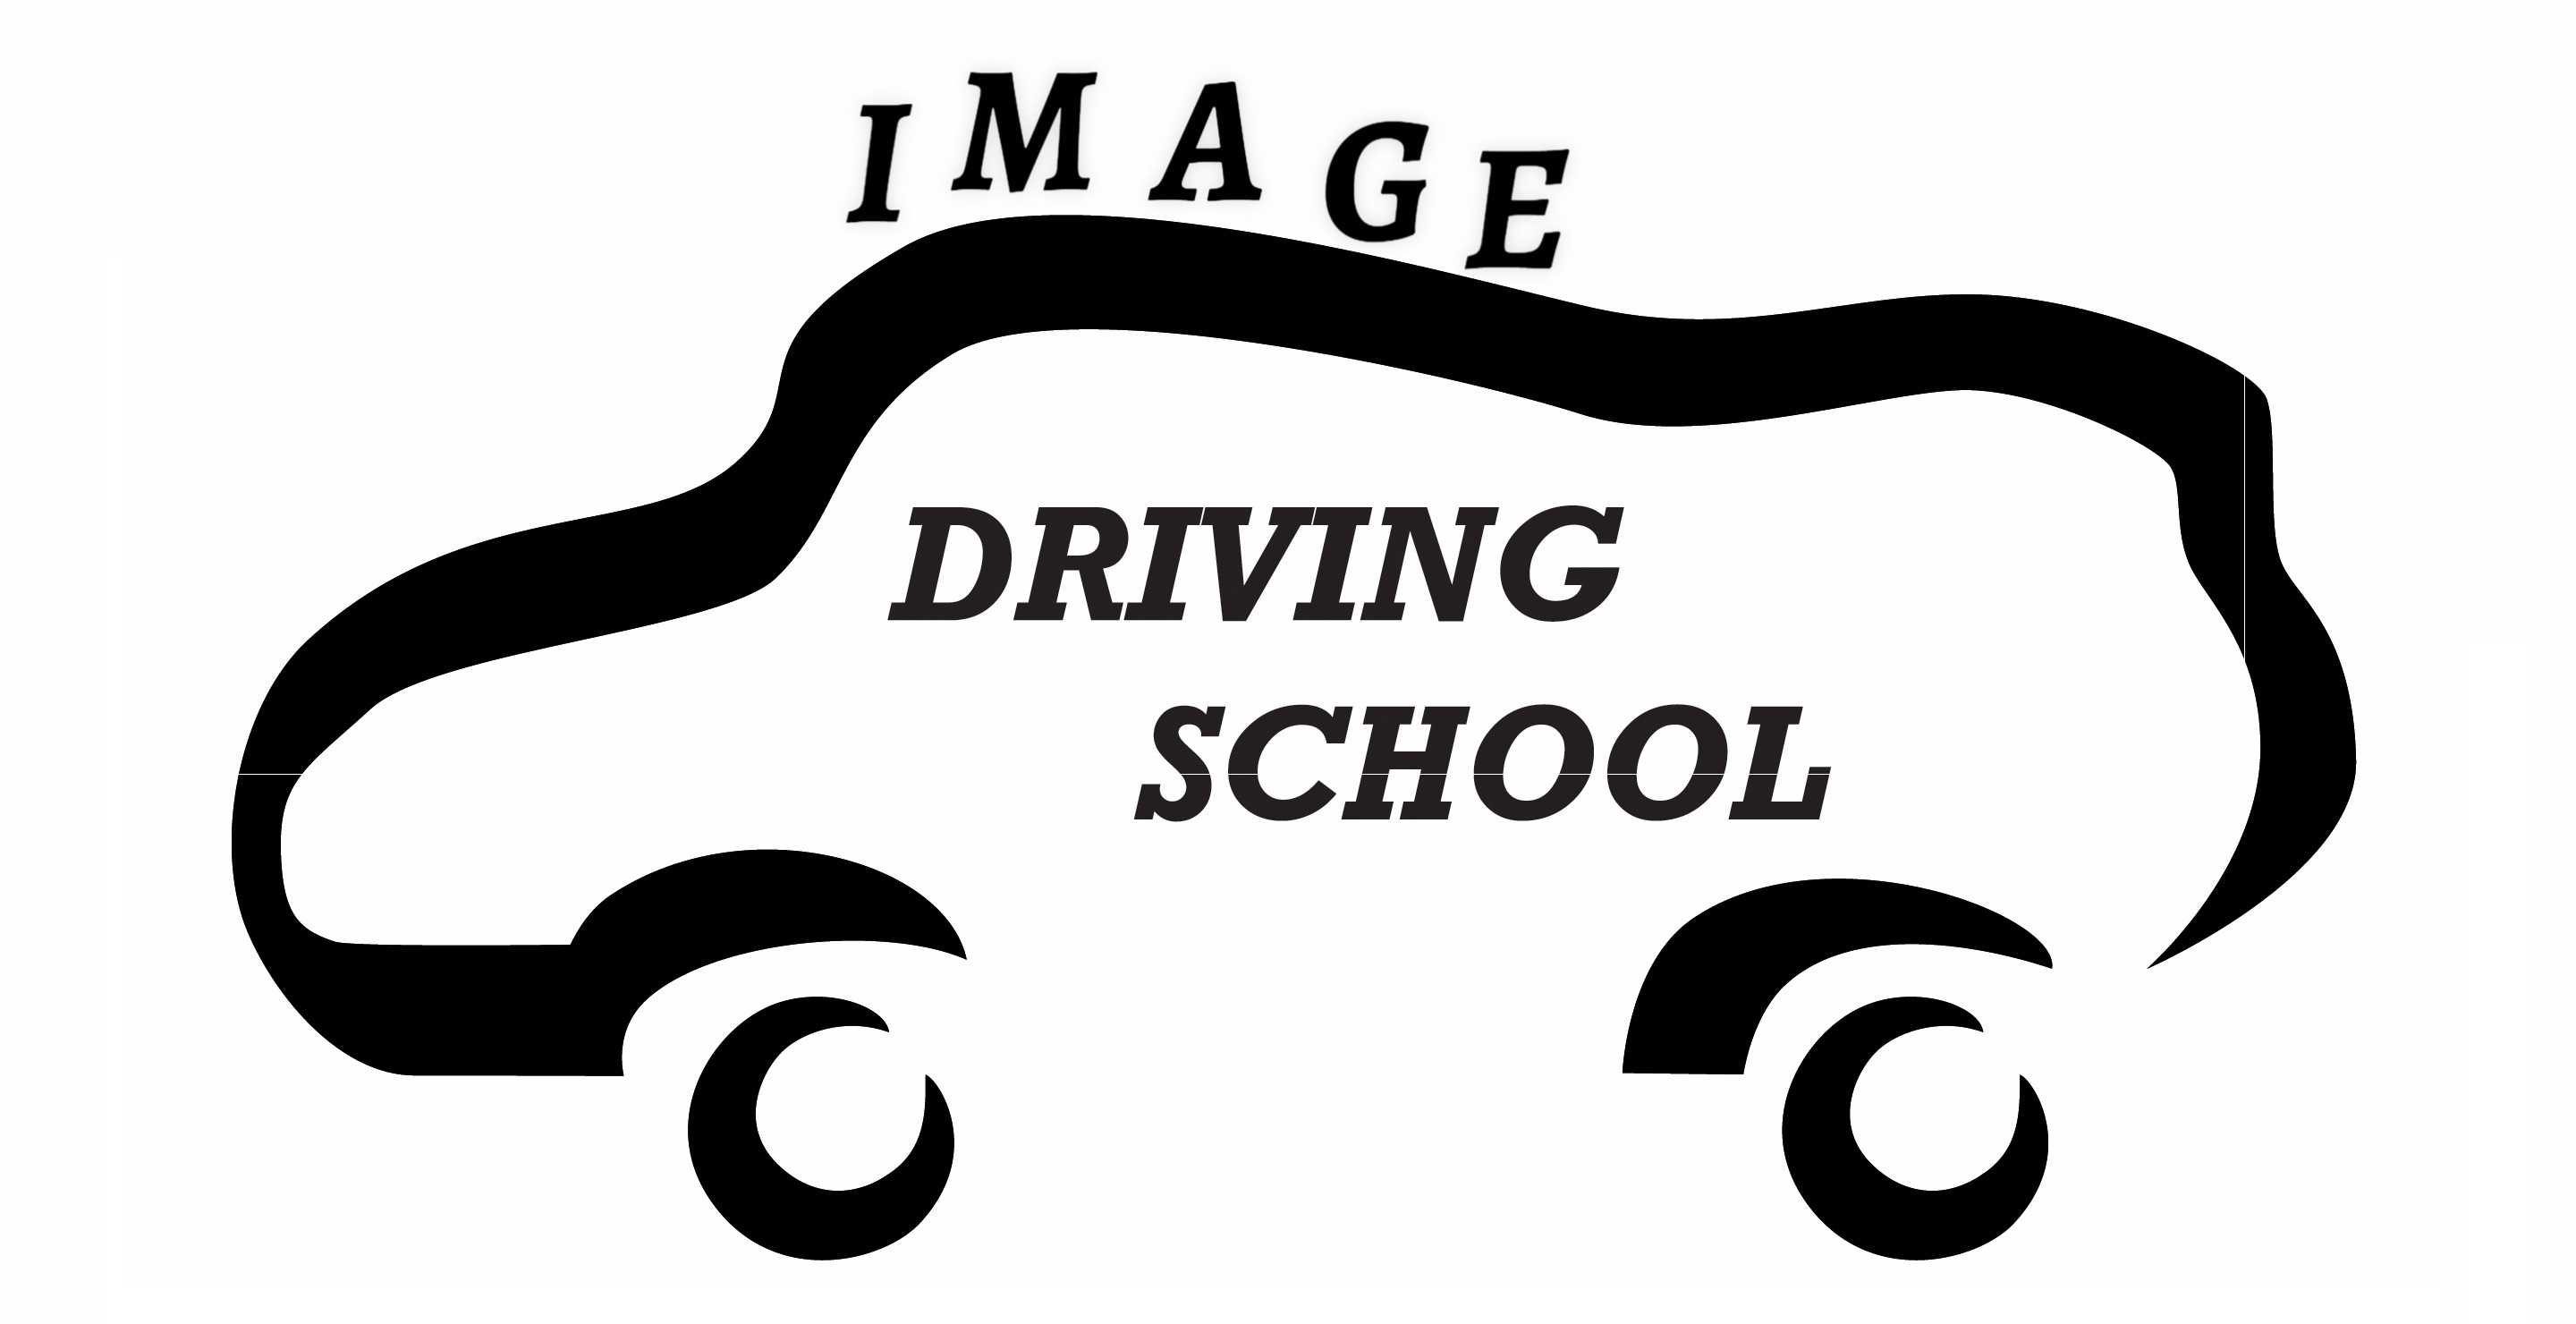 Driving School Brooklyn Ny Image Driving School